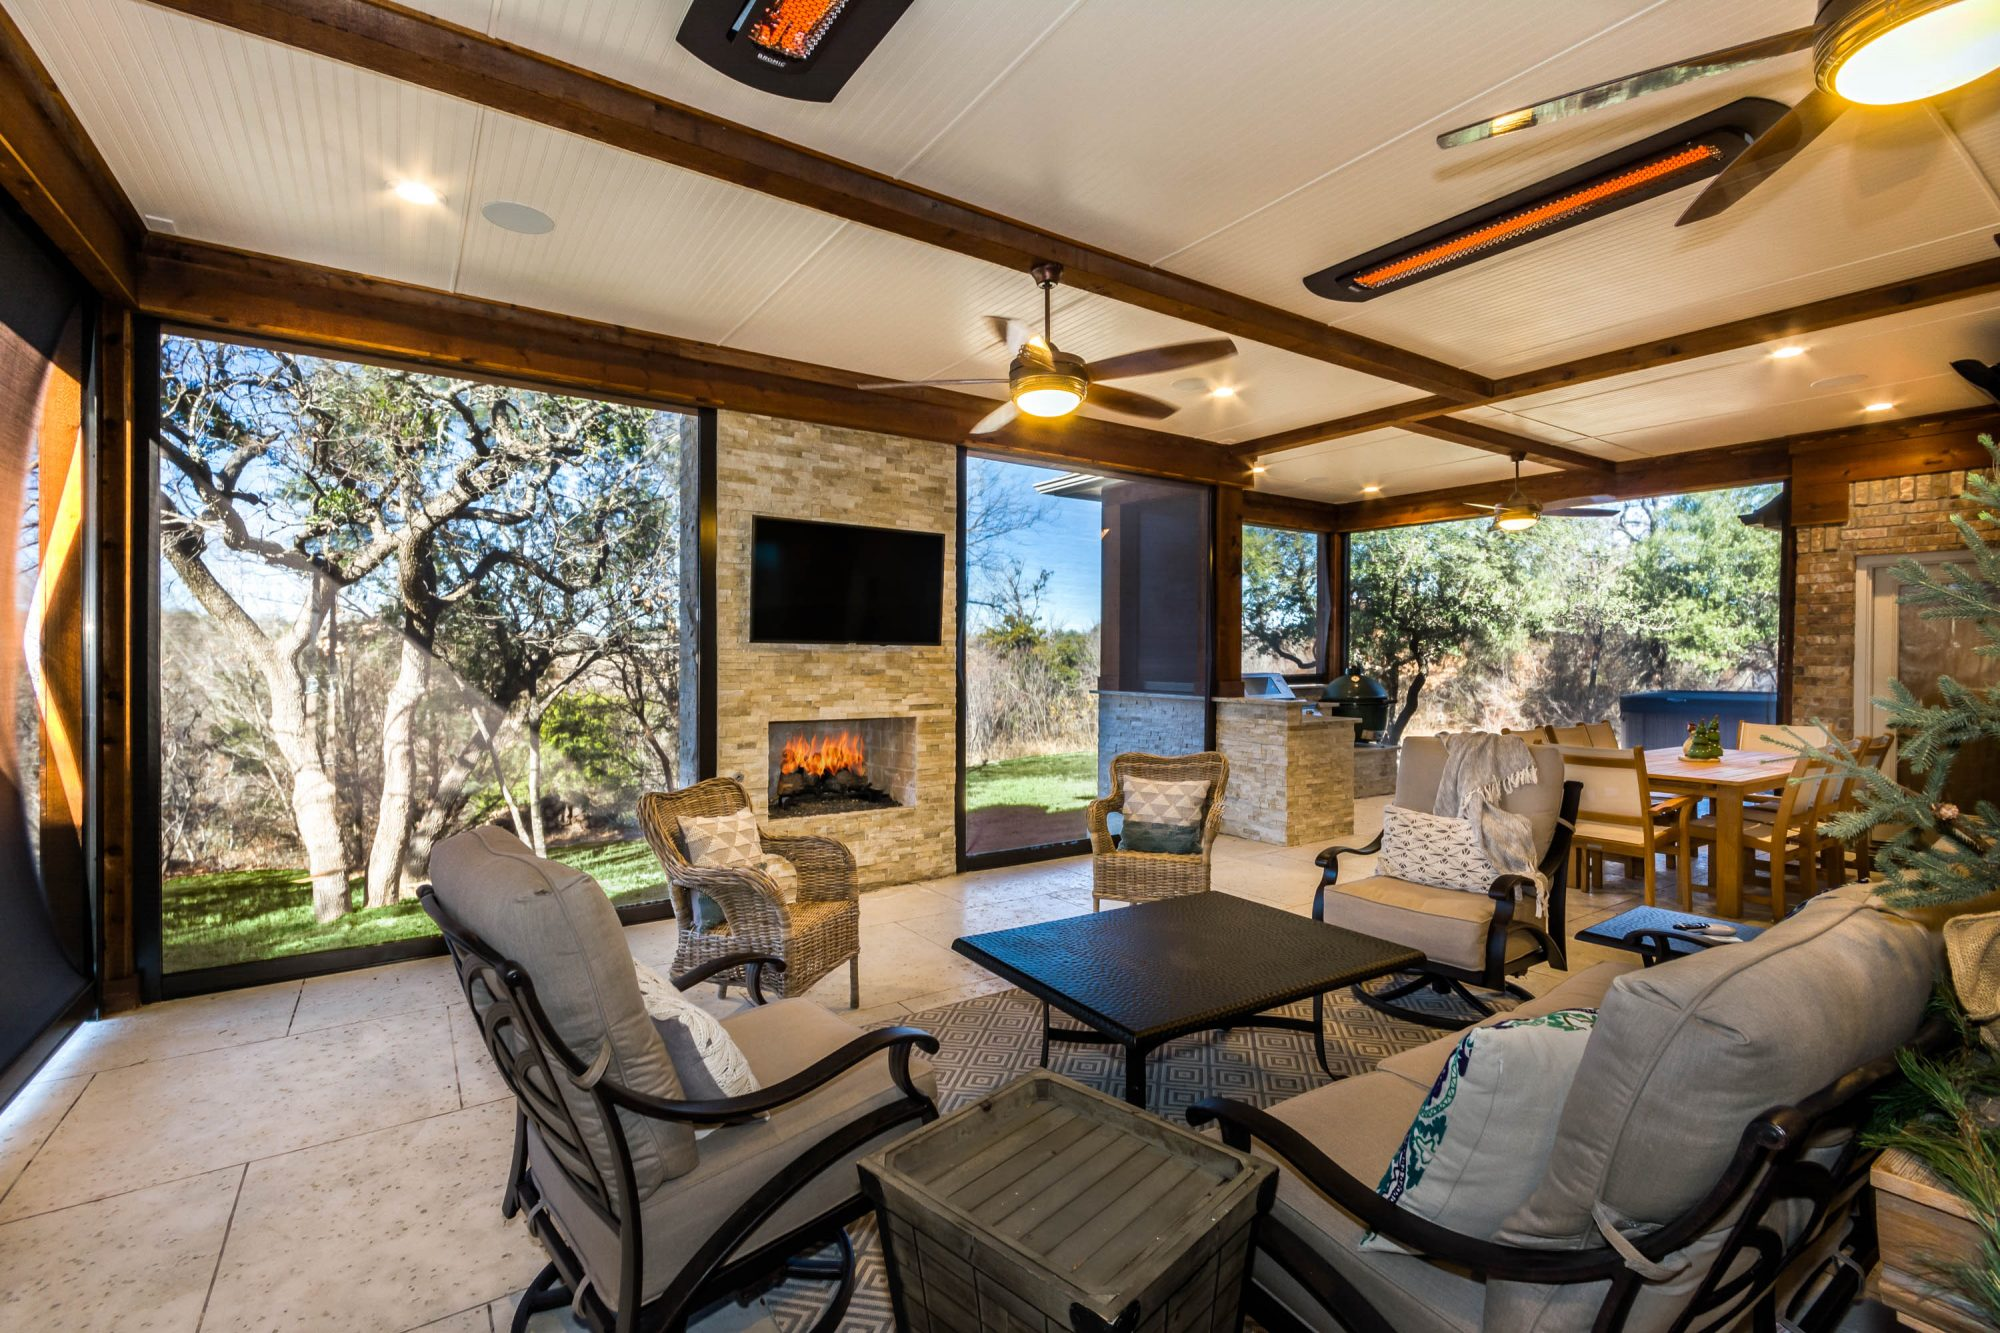 Outdoor living area in Dallas designed by Compass Outdoor Design includes an outdoor fireplace, television, seating area, and more!